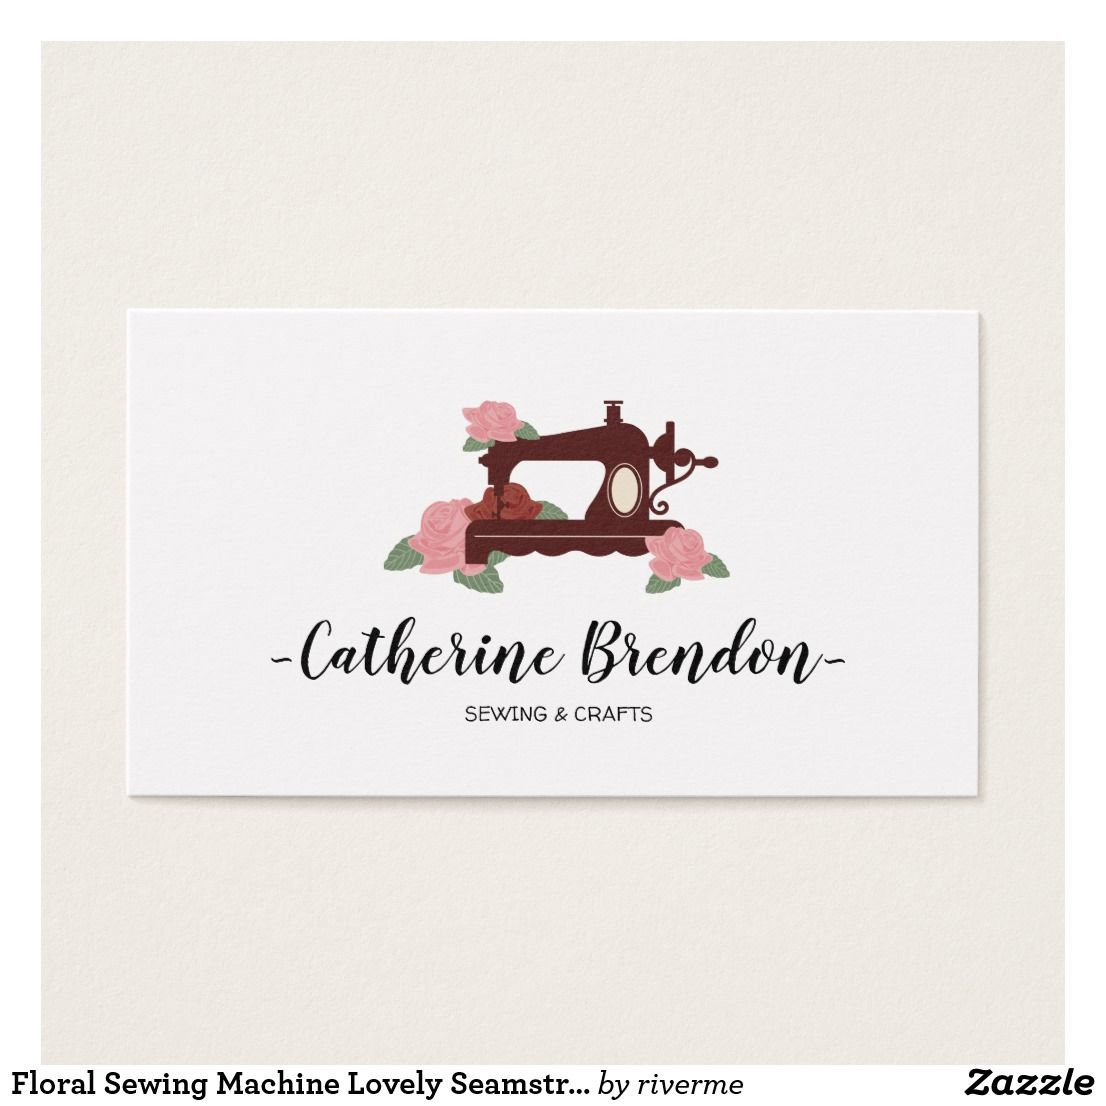 Floral Sewing Machine Lovely Seamstress Business Card   Business ...